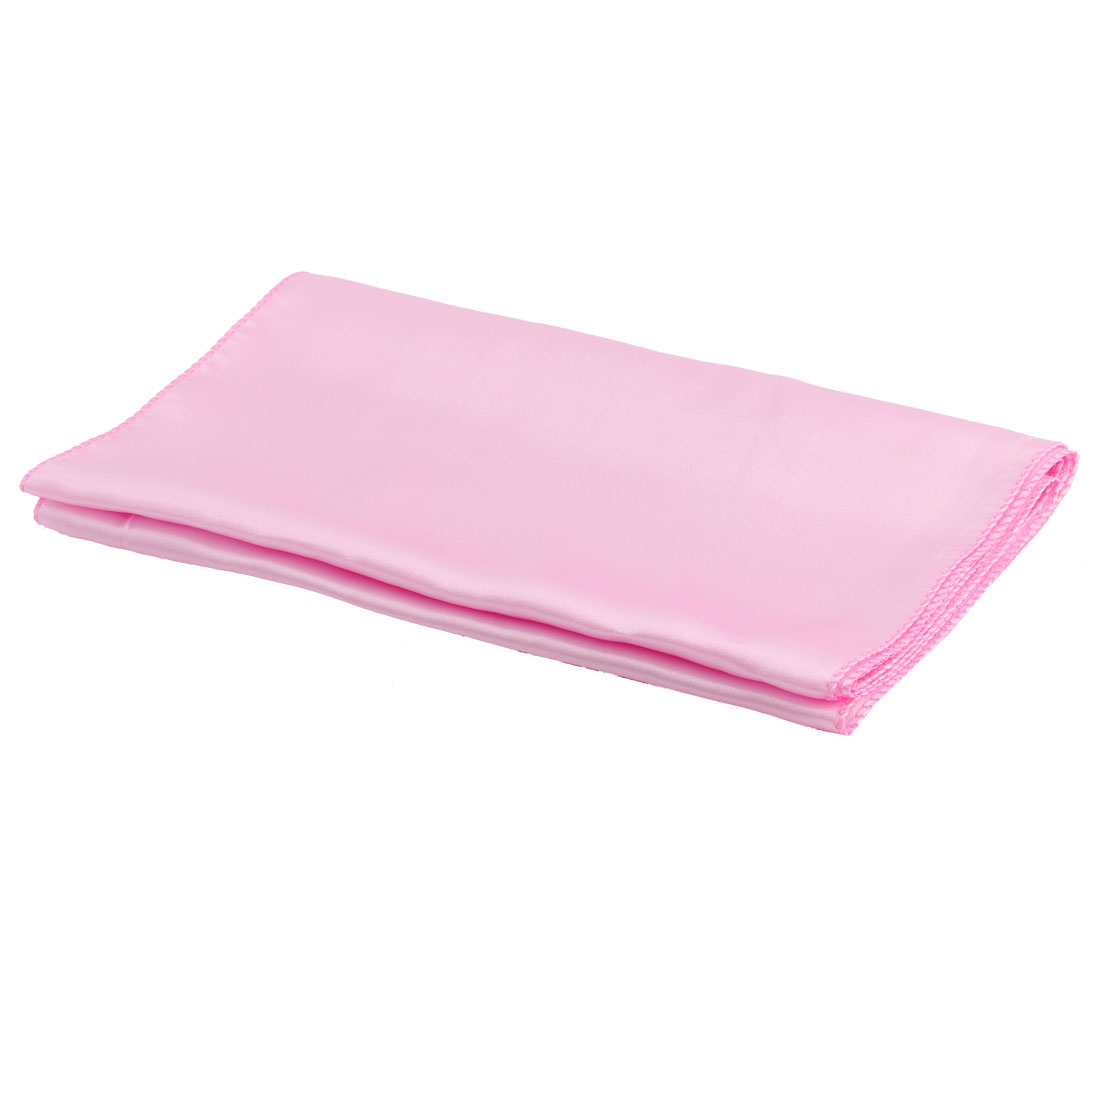 Hotel Restaurant Polyester Table Runner Placemats Wedding Venue Decorations Ornament Pink